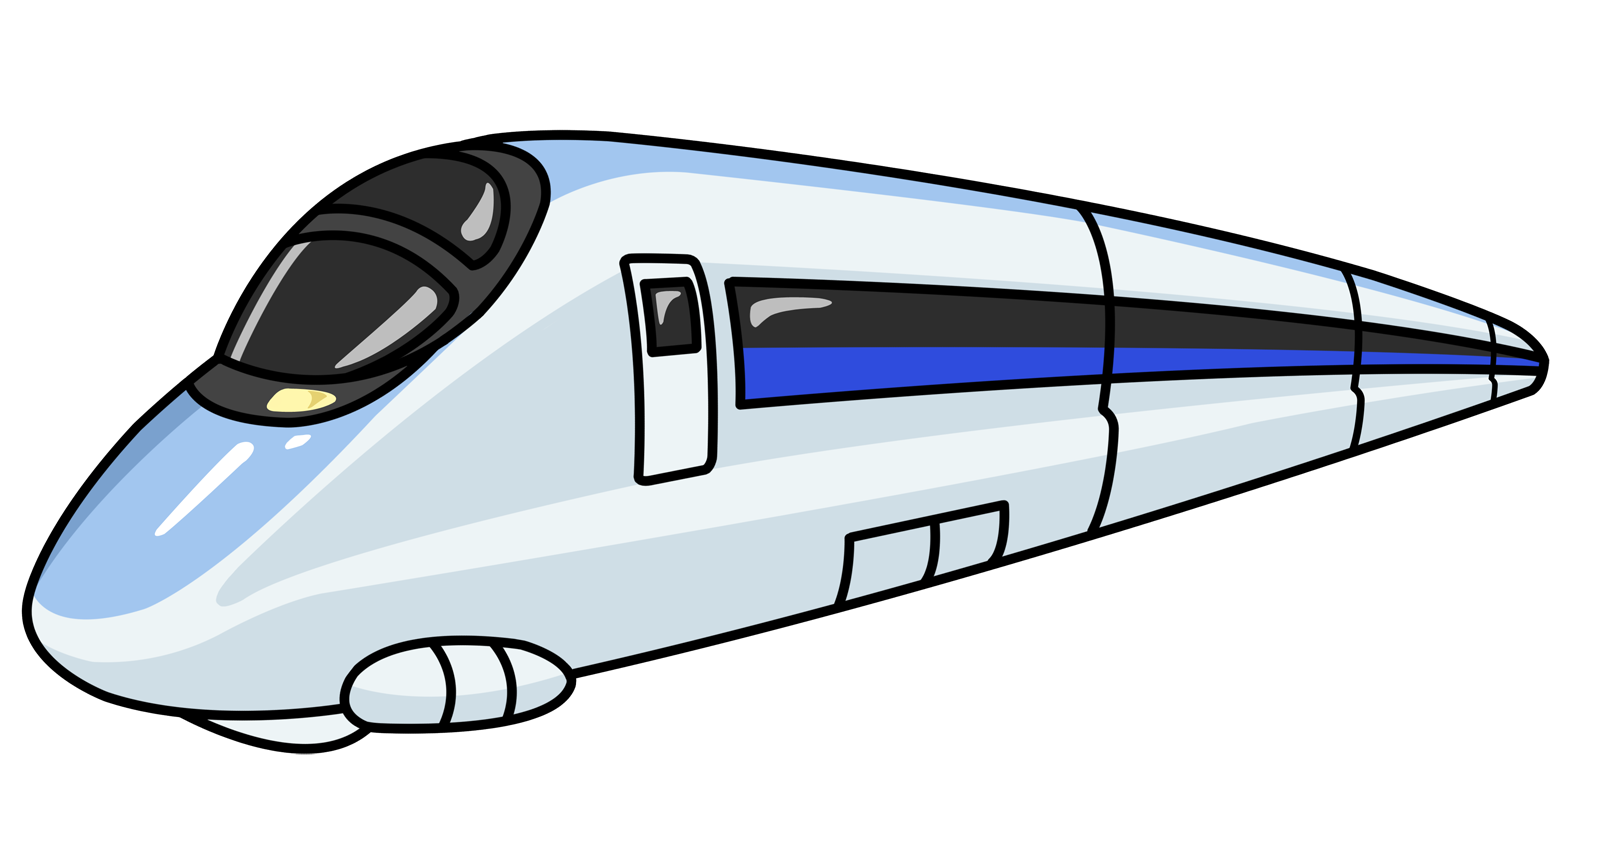 Large monorail